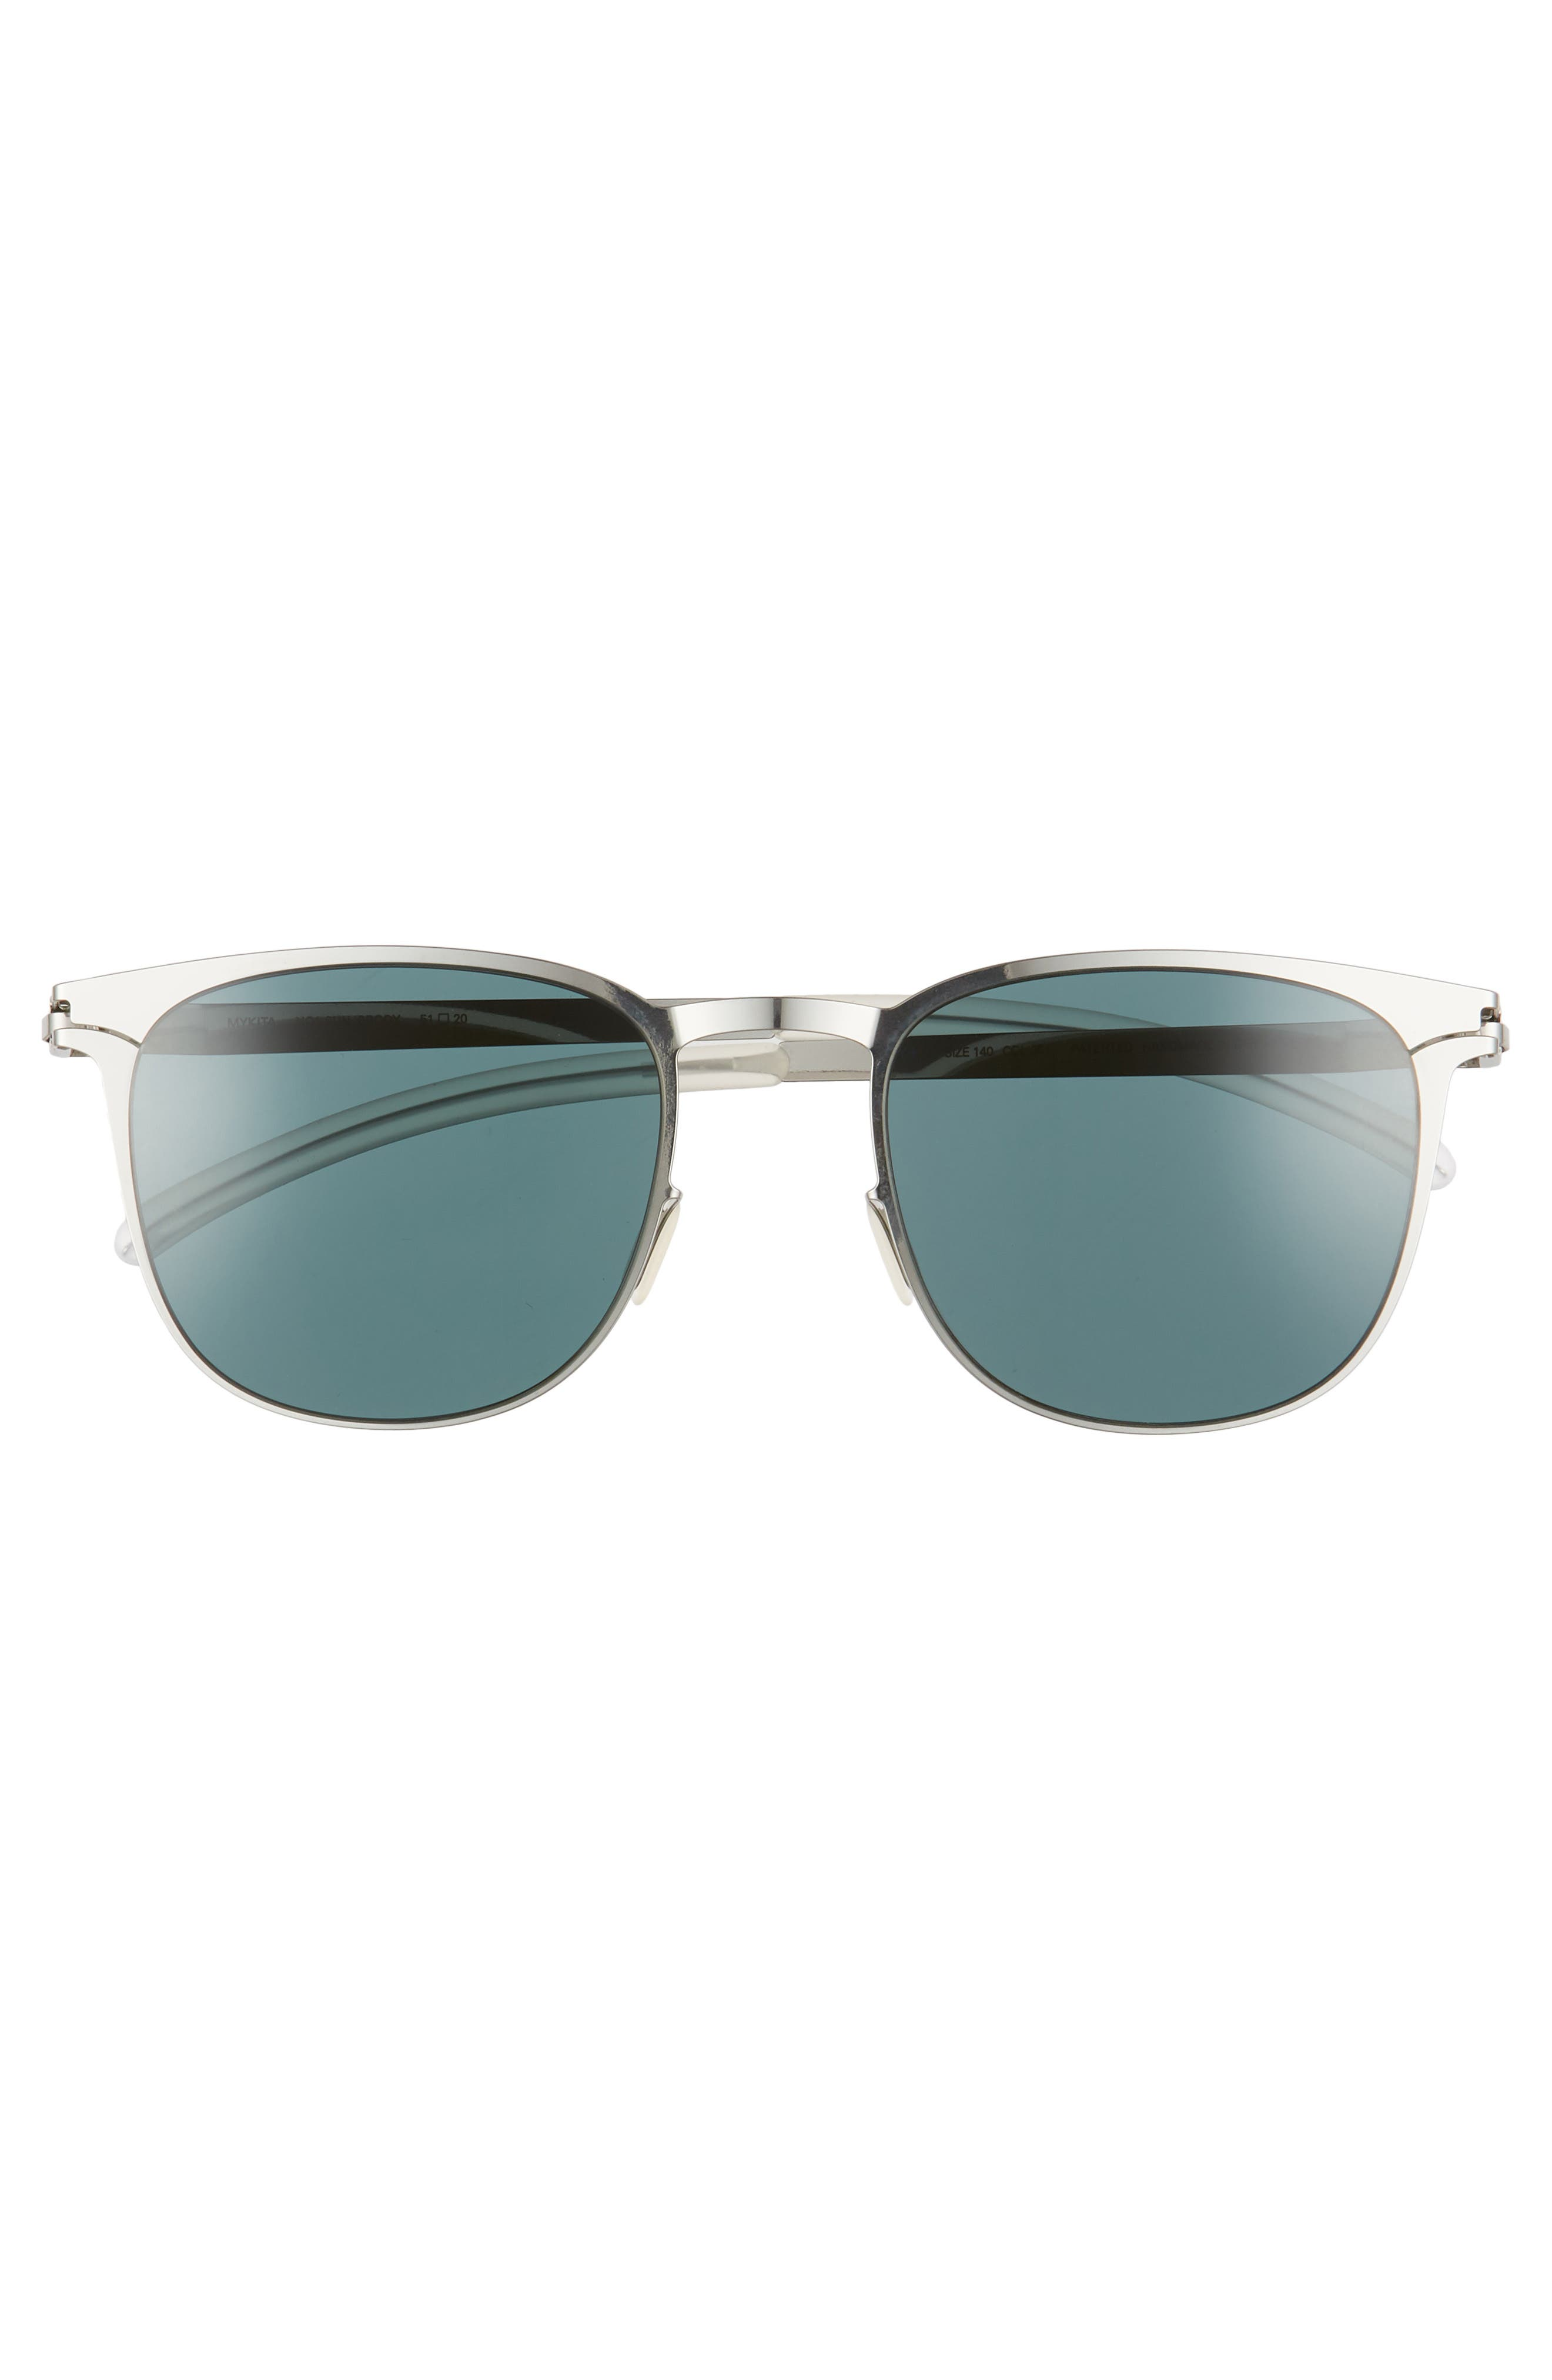 Brody 51mm Polarized Sunglasses,                             Alternate thumbnail 2, color,                             Shiny Silver